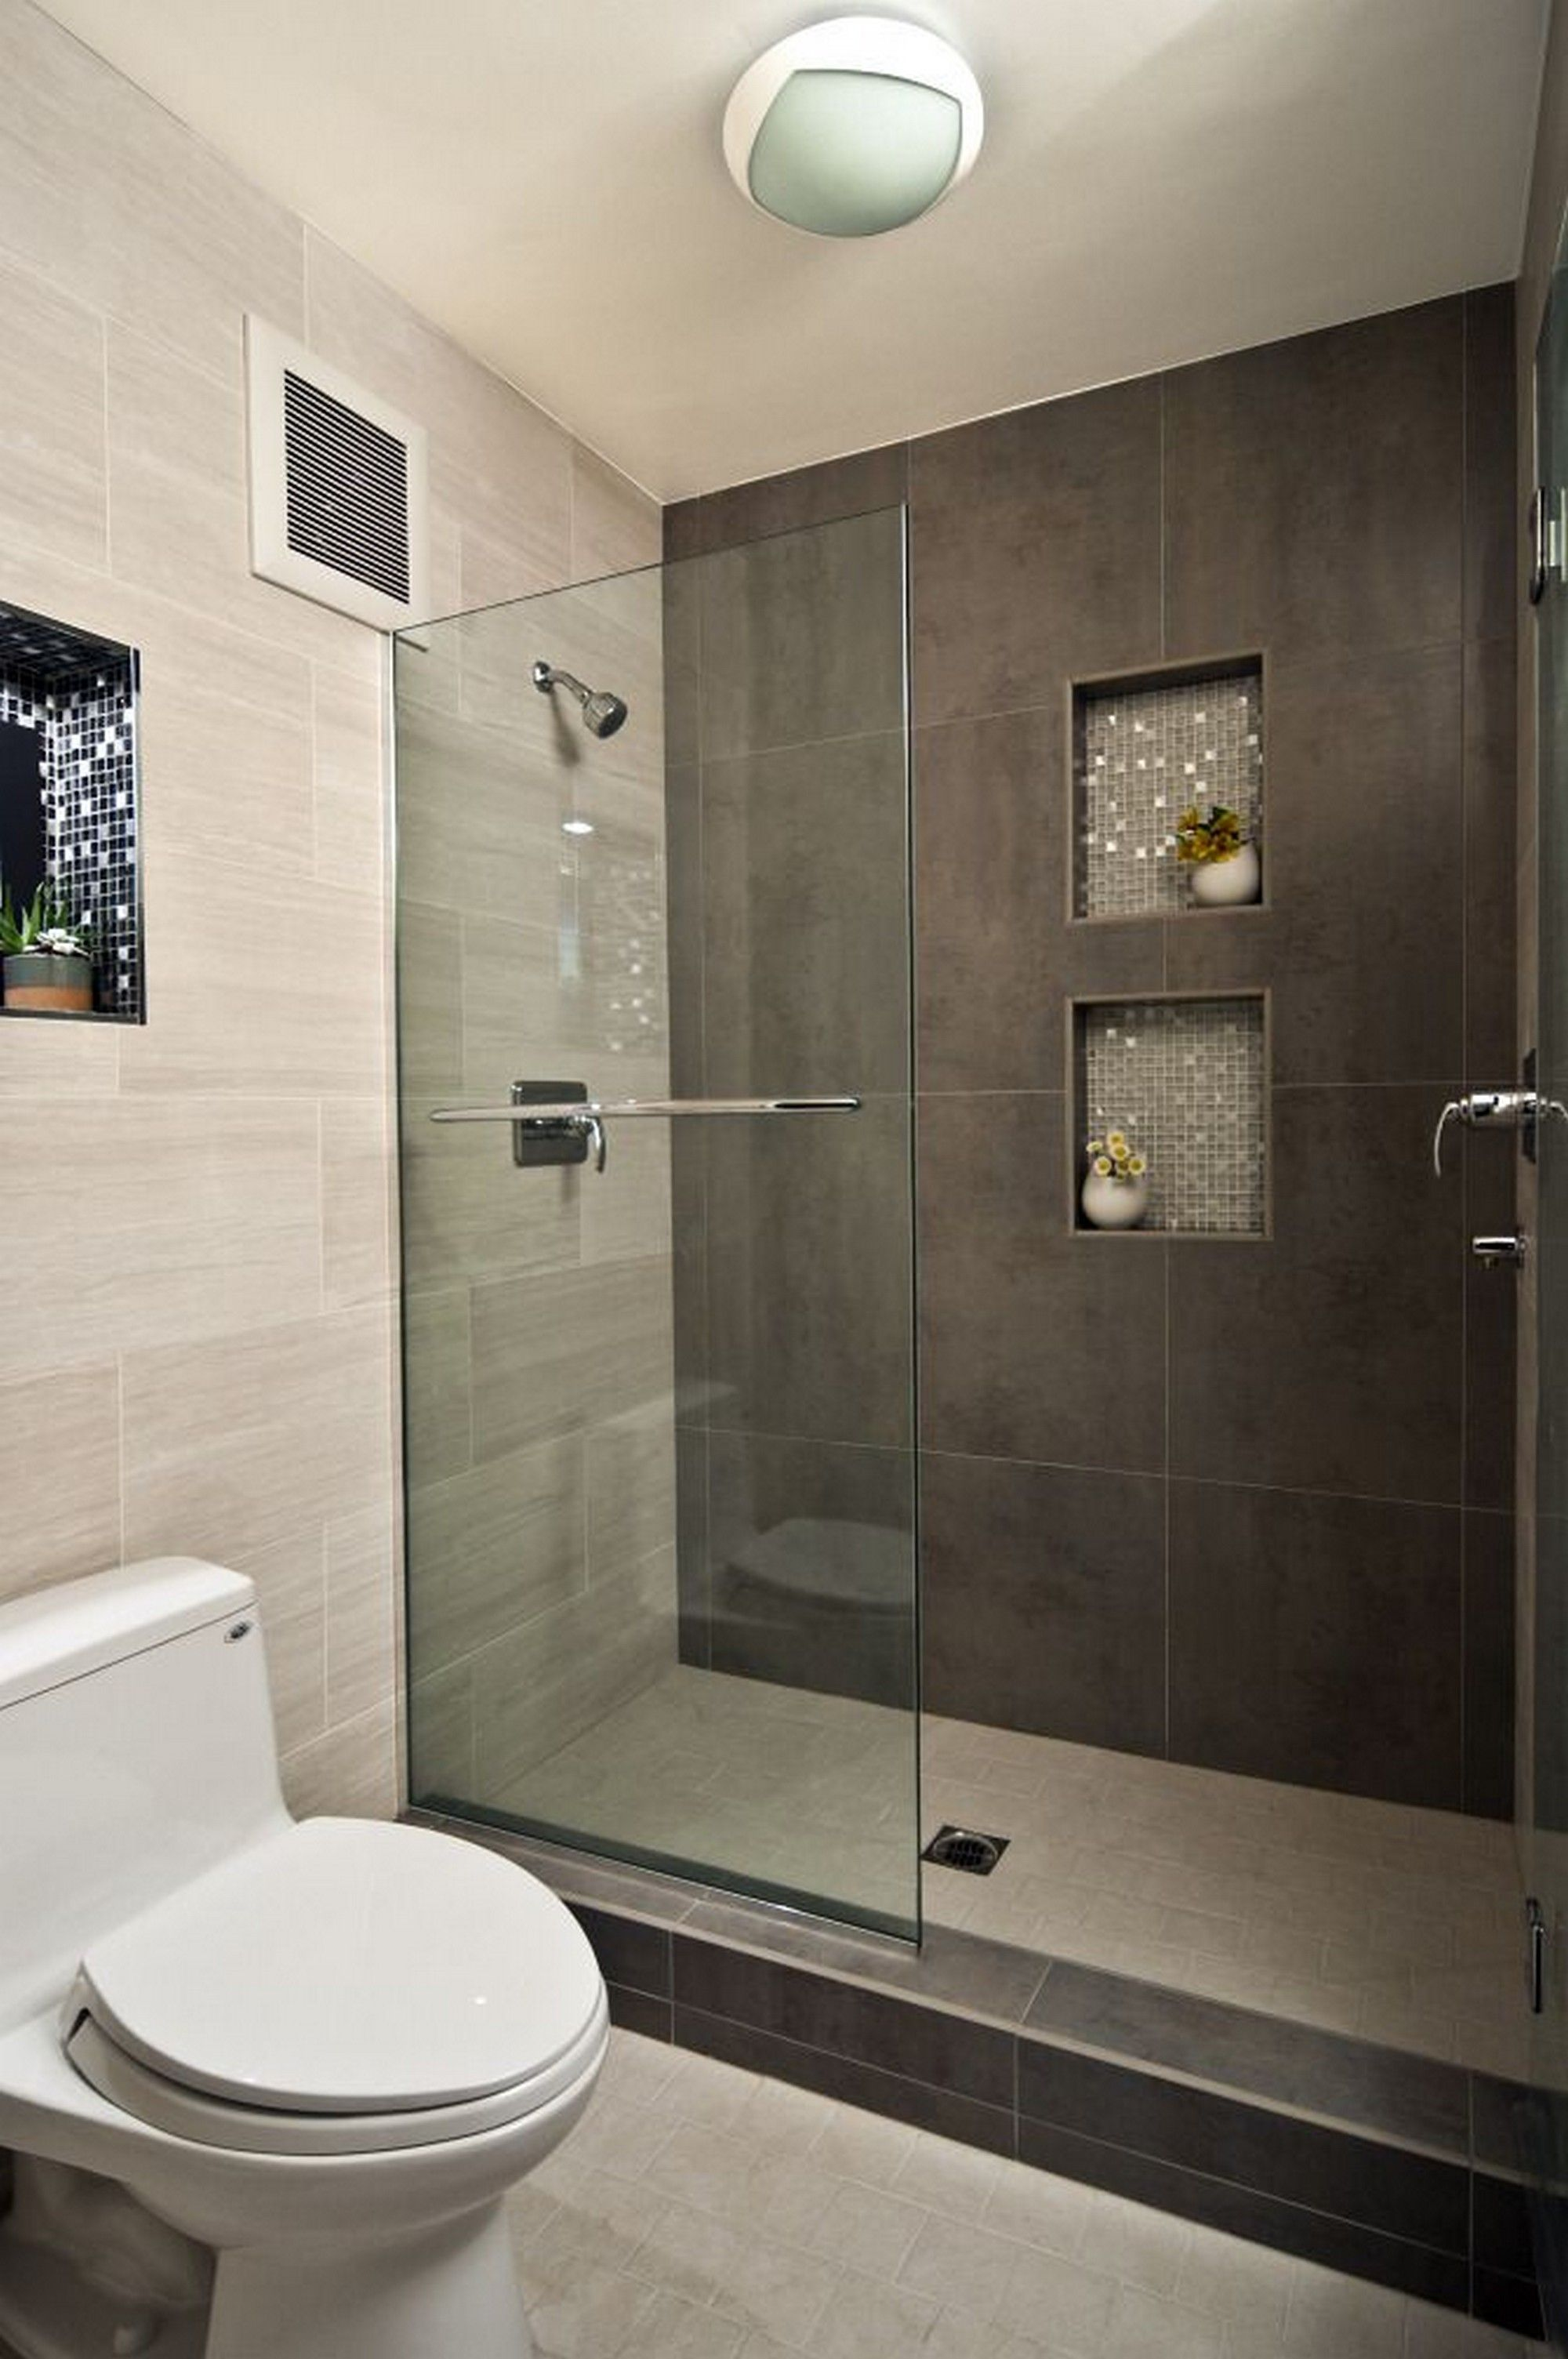 Modern Bathroom Design Ideas With Walk In Shower Interior Vogue Small Bathroom Remodel Bathroom Remodel Master Bathroom Design Small